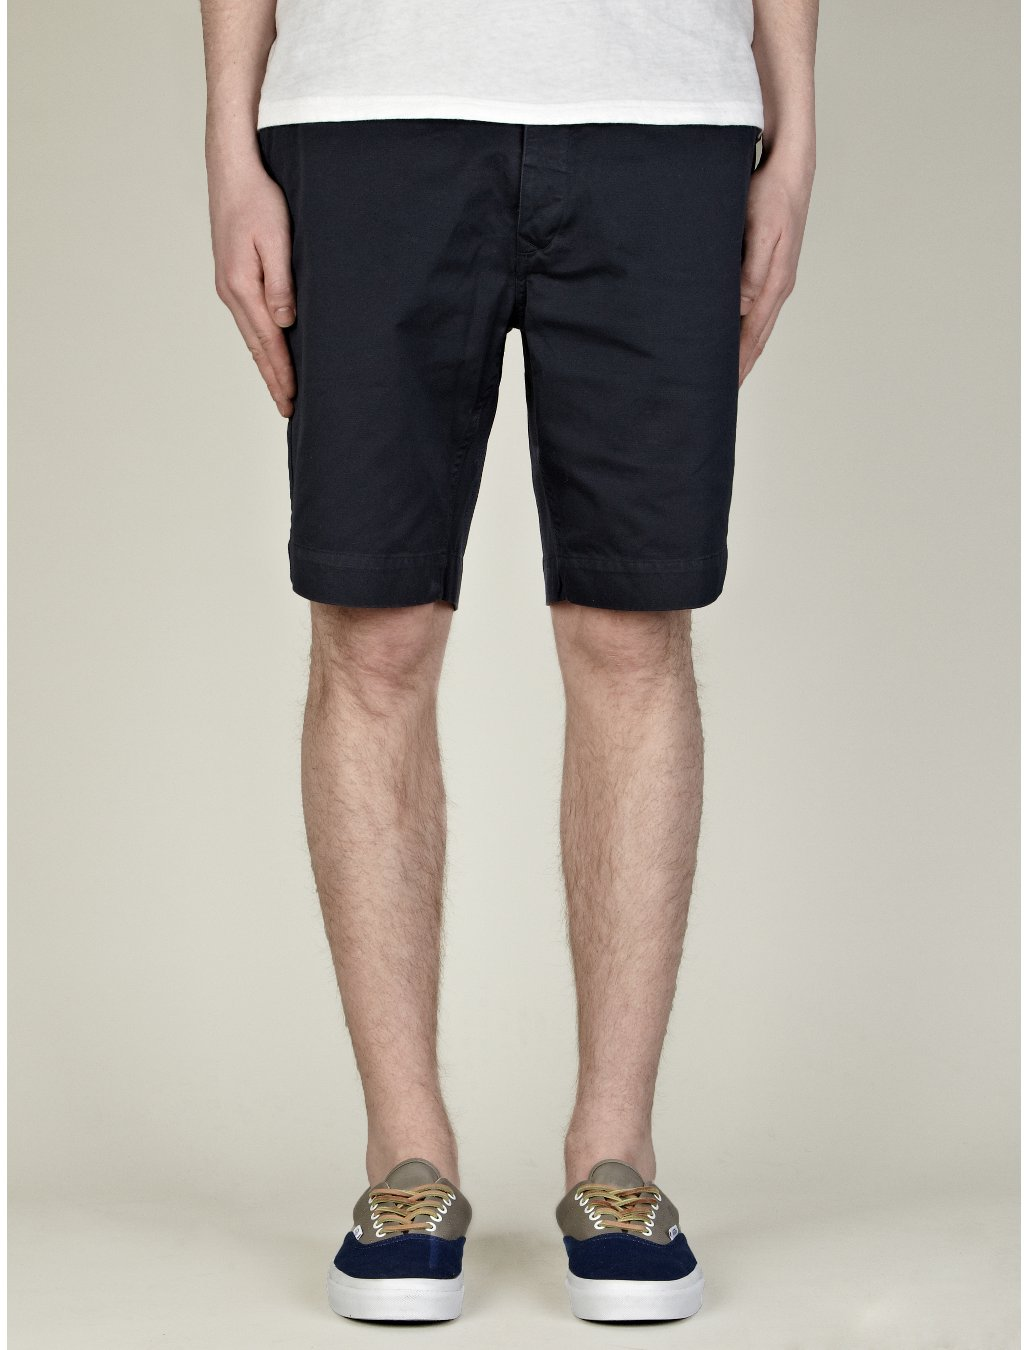 Find navy blue chino shorts at ShopStyle. Shop the latest collection of navy blue chino shorts from the most popular stores - all in one place.